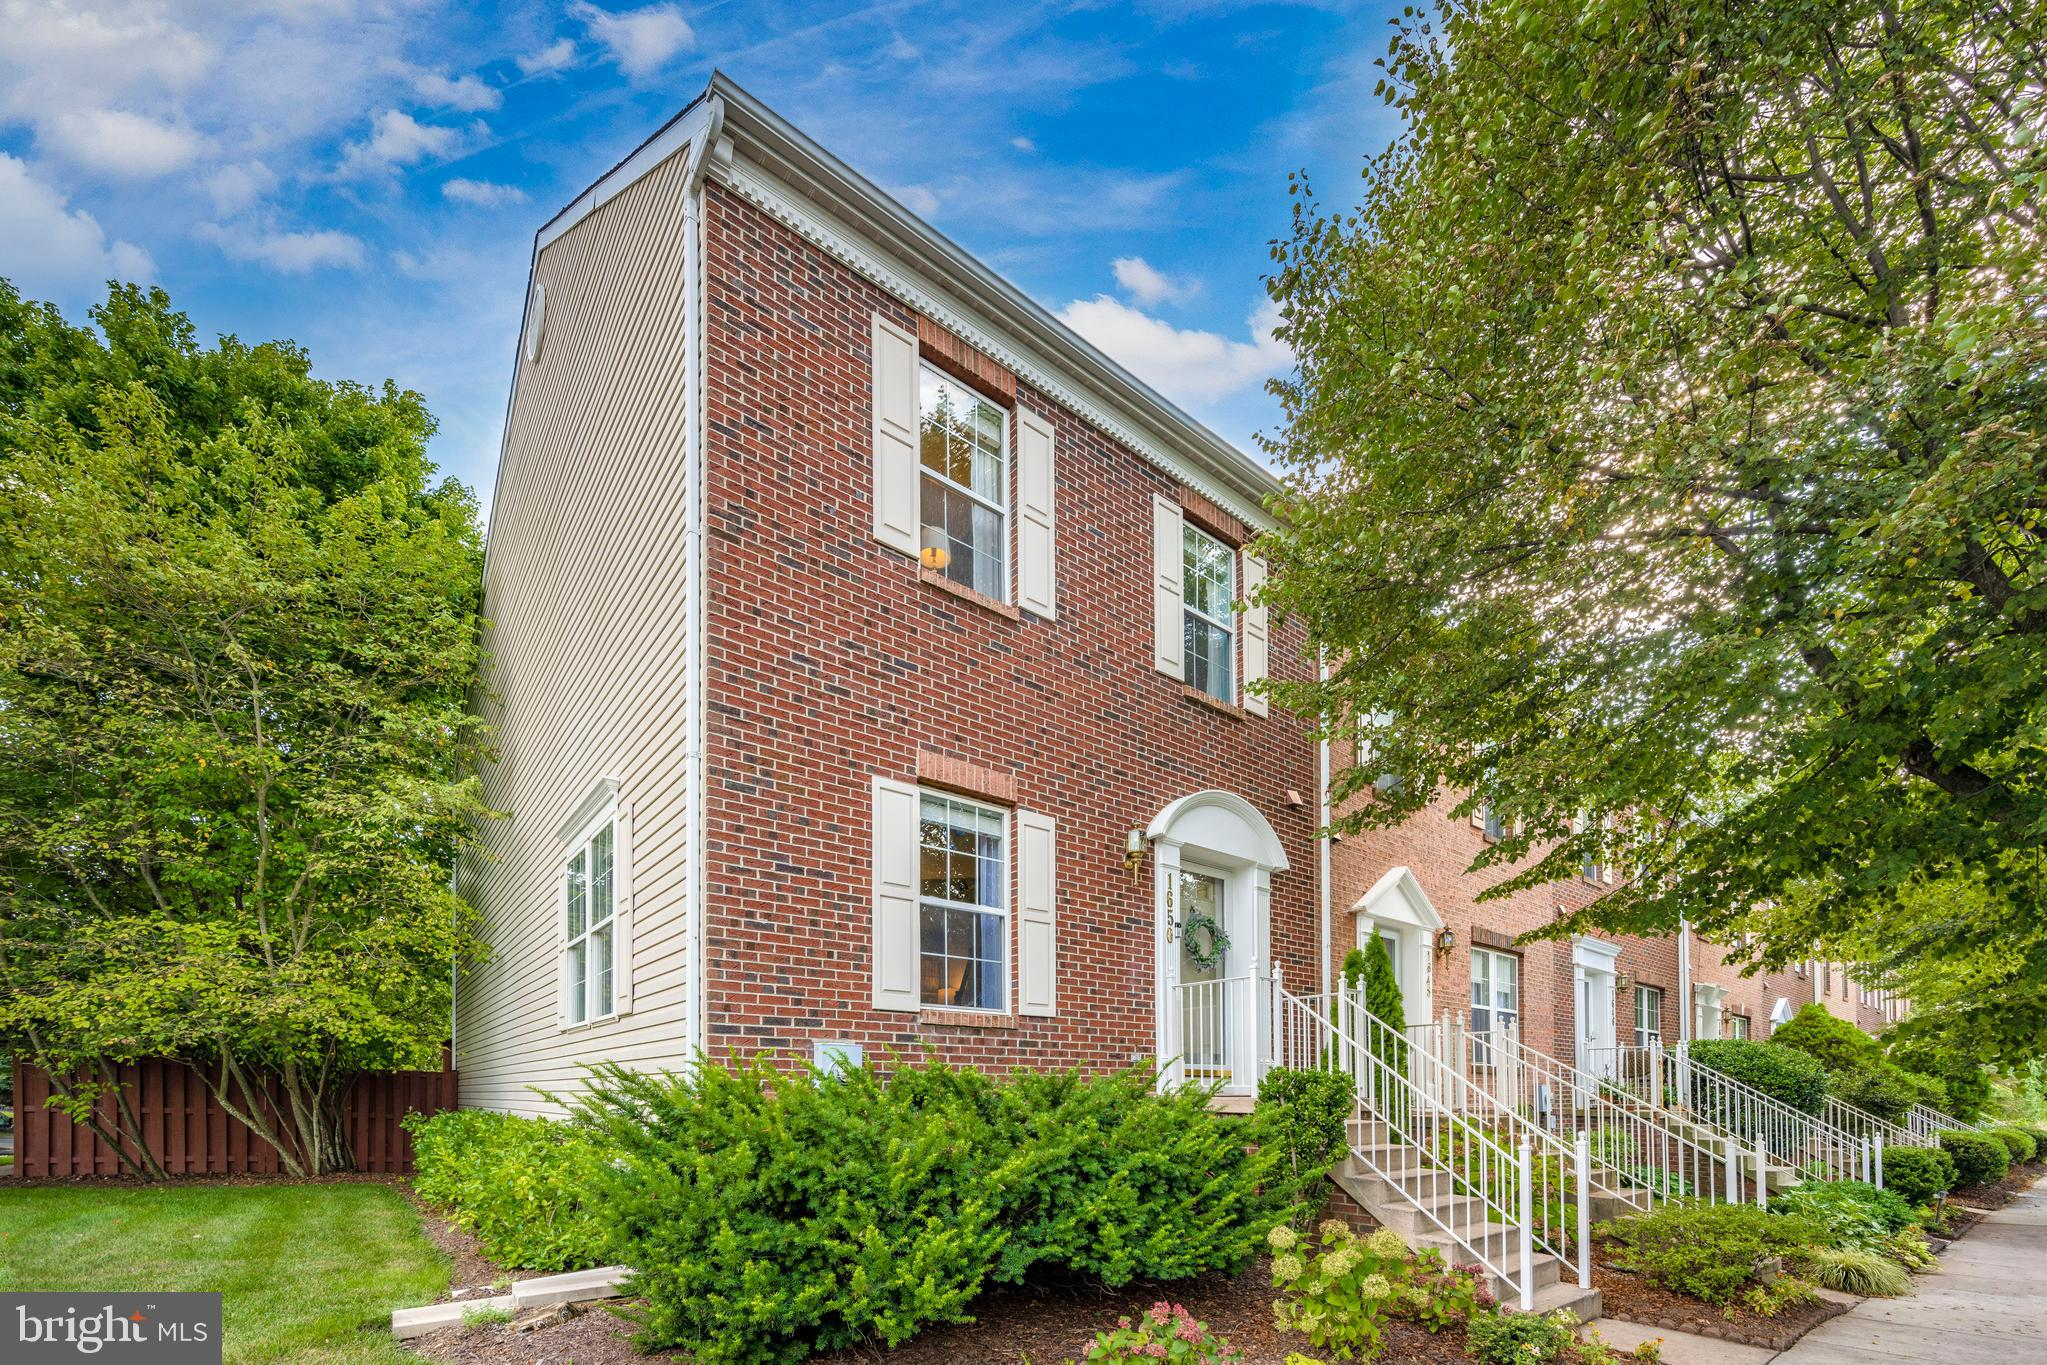 Come and visit the beautifully renovated end unit townhome in sought after Dearbought. Hardwood floo